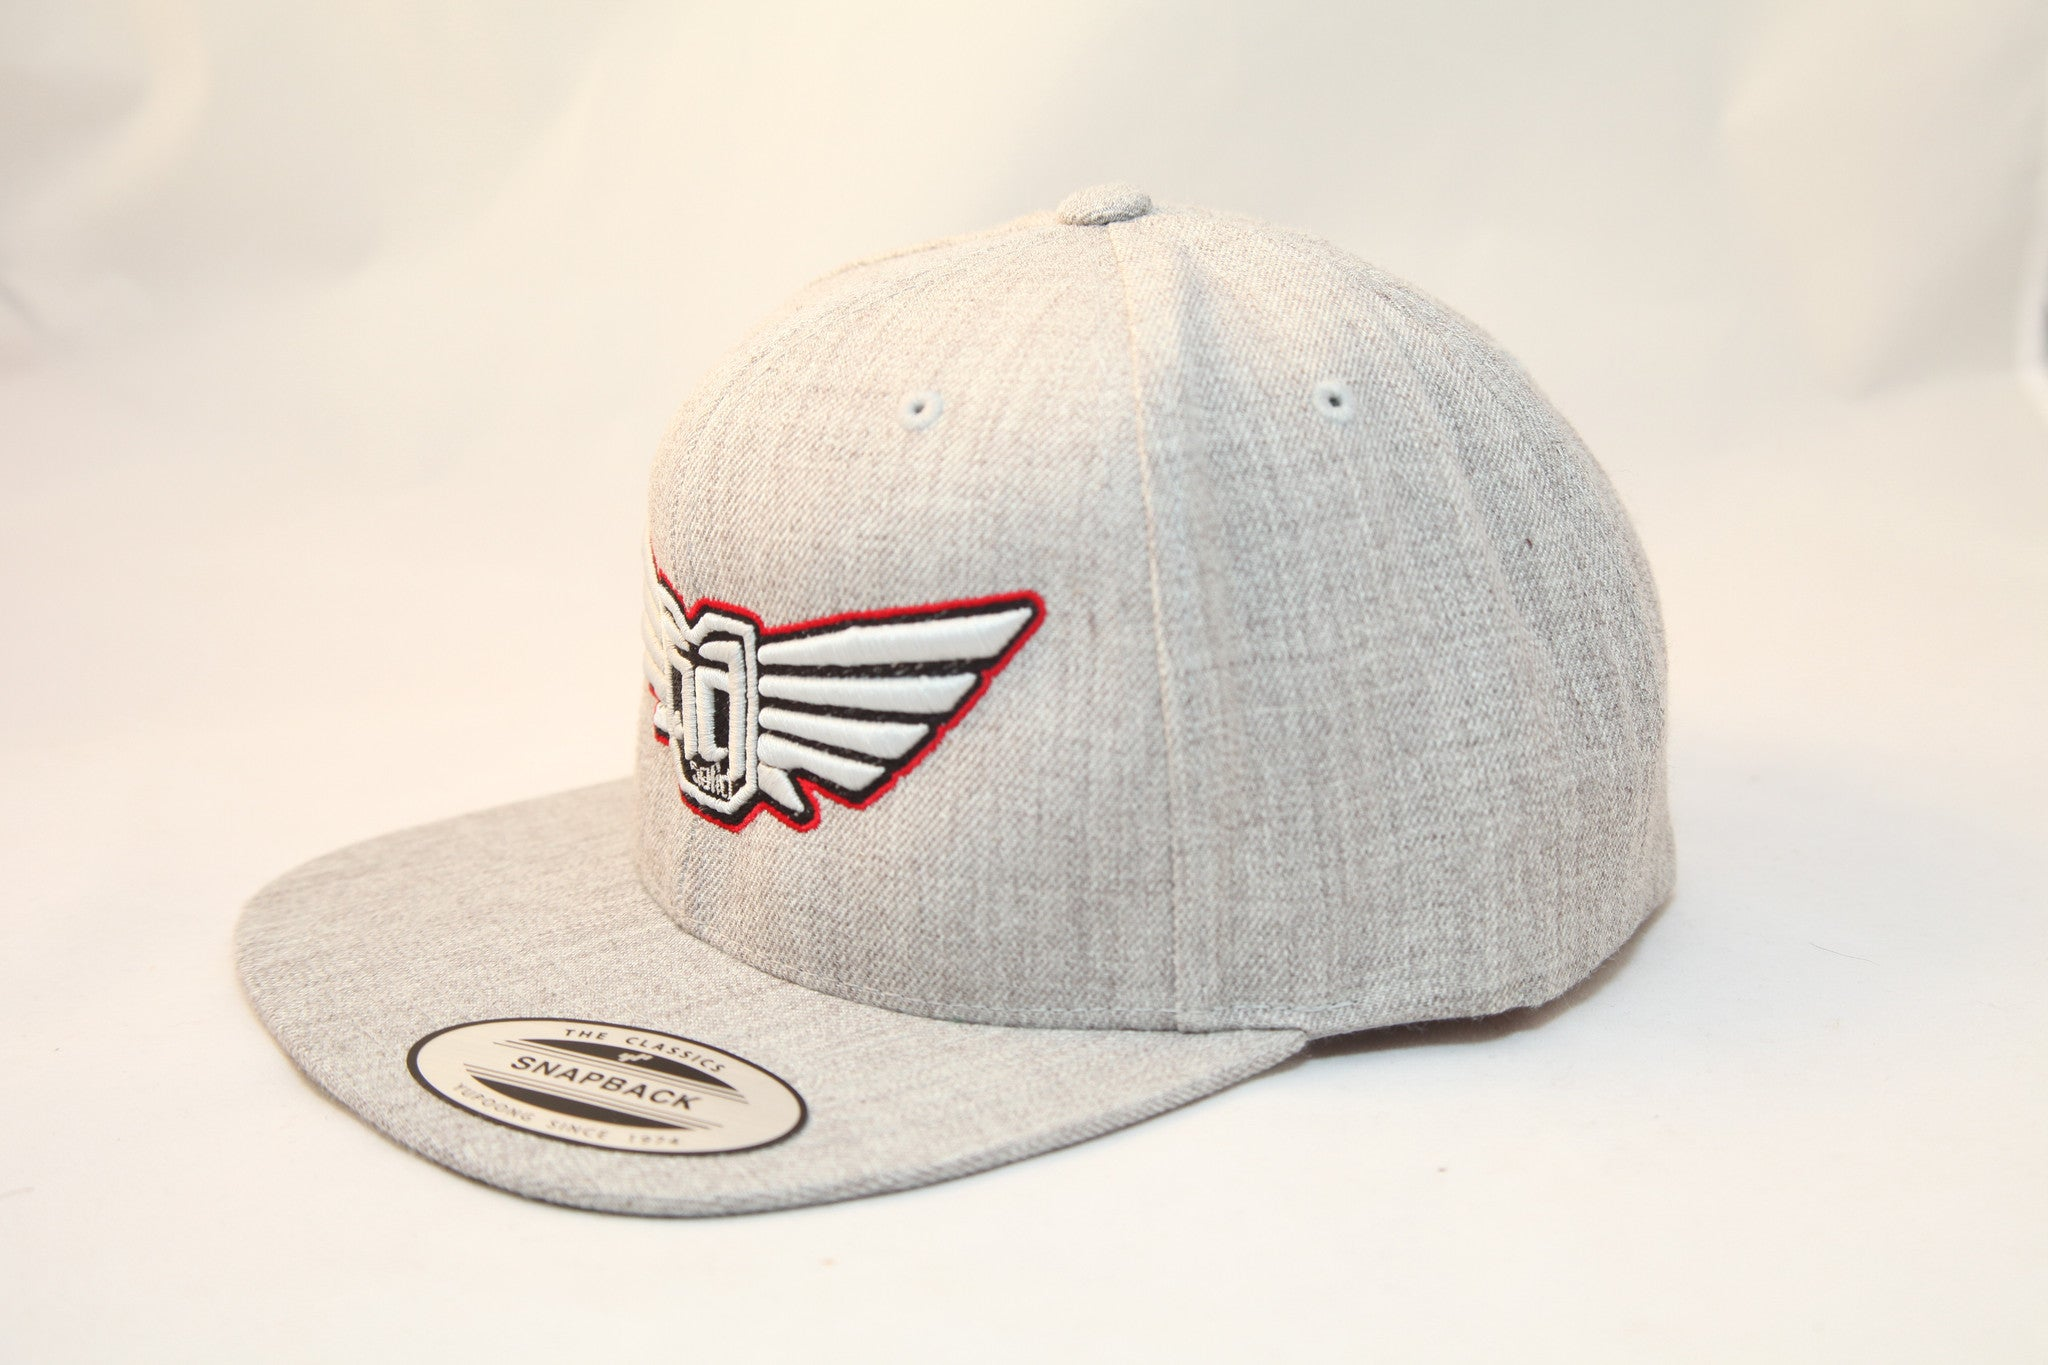 AV8 - FLEXFIT SNAP BACK HAT - ASH GREY - WHT / BLK / RED LOGO